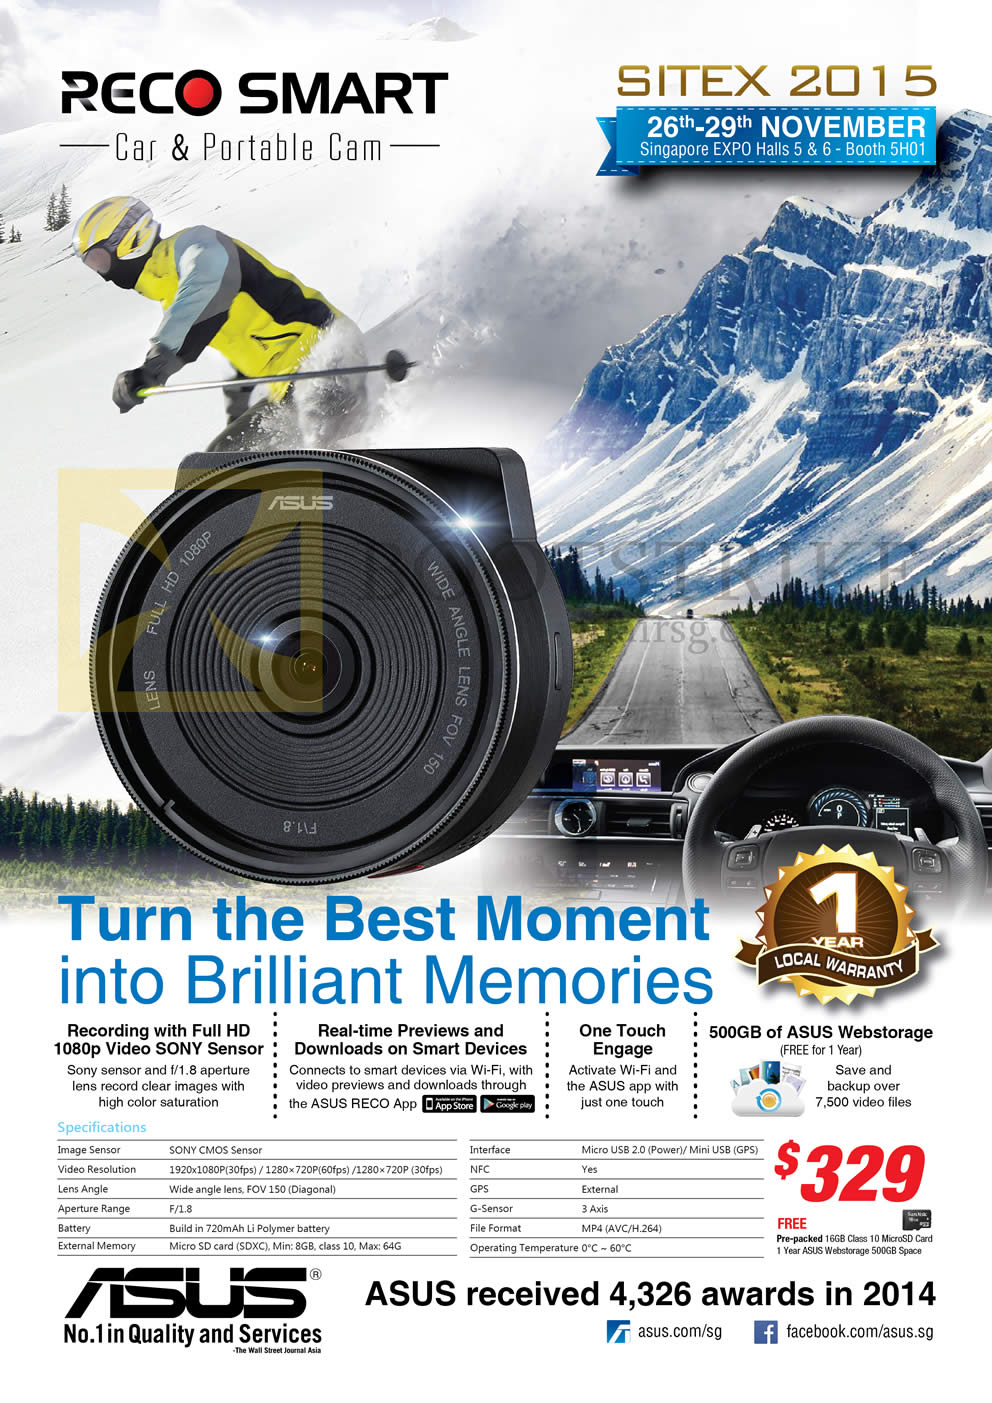 SITEX 2015 price list image brochure of ASUS Reco Smart Car Portable Video Cam